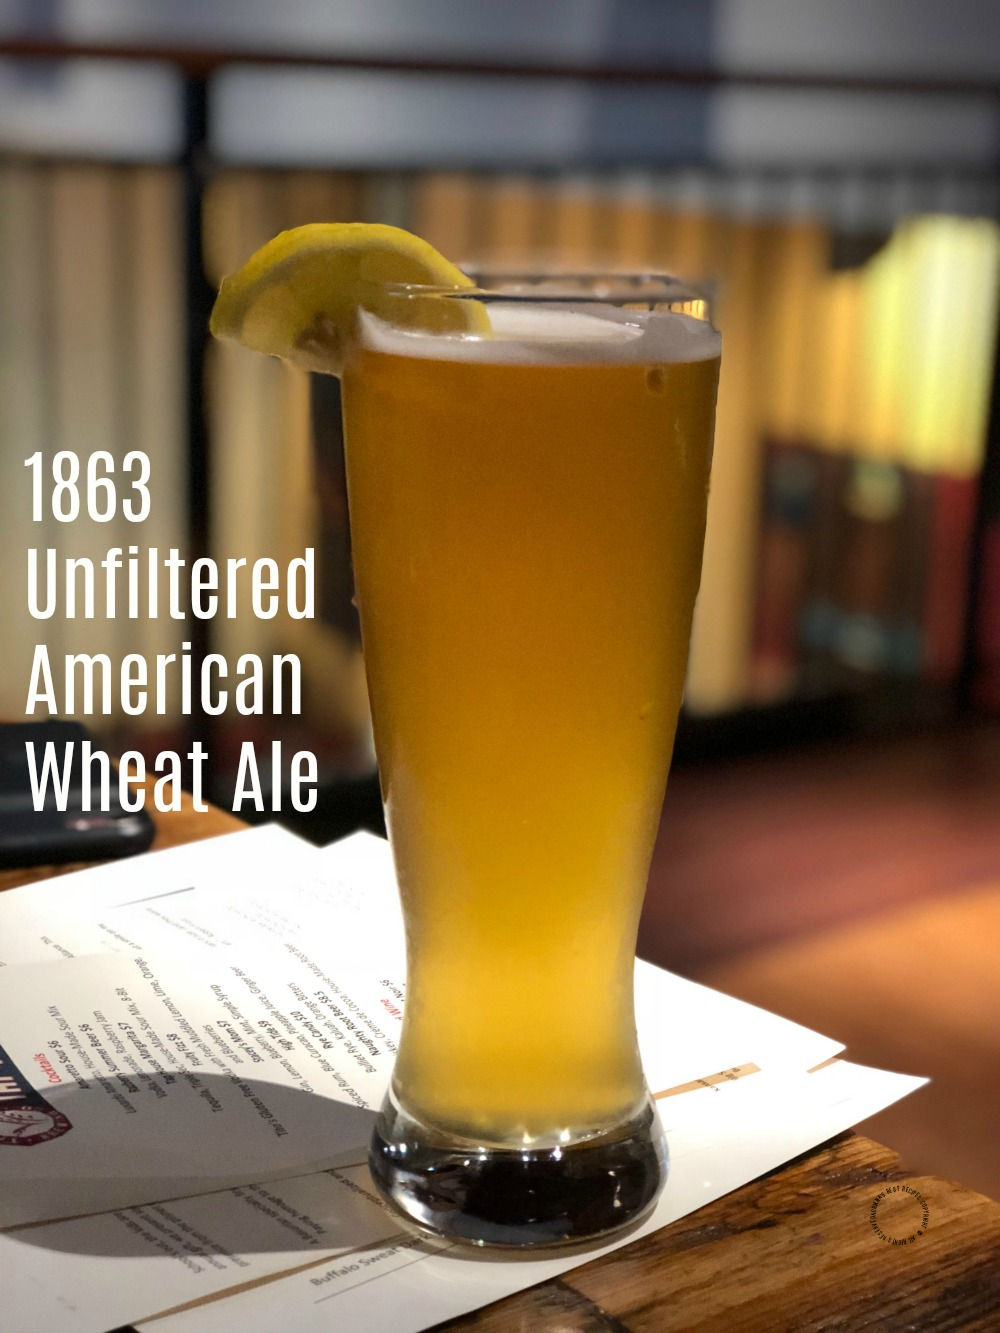 1863 Unfiltered American Wheat Ale